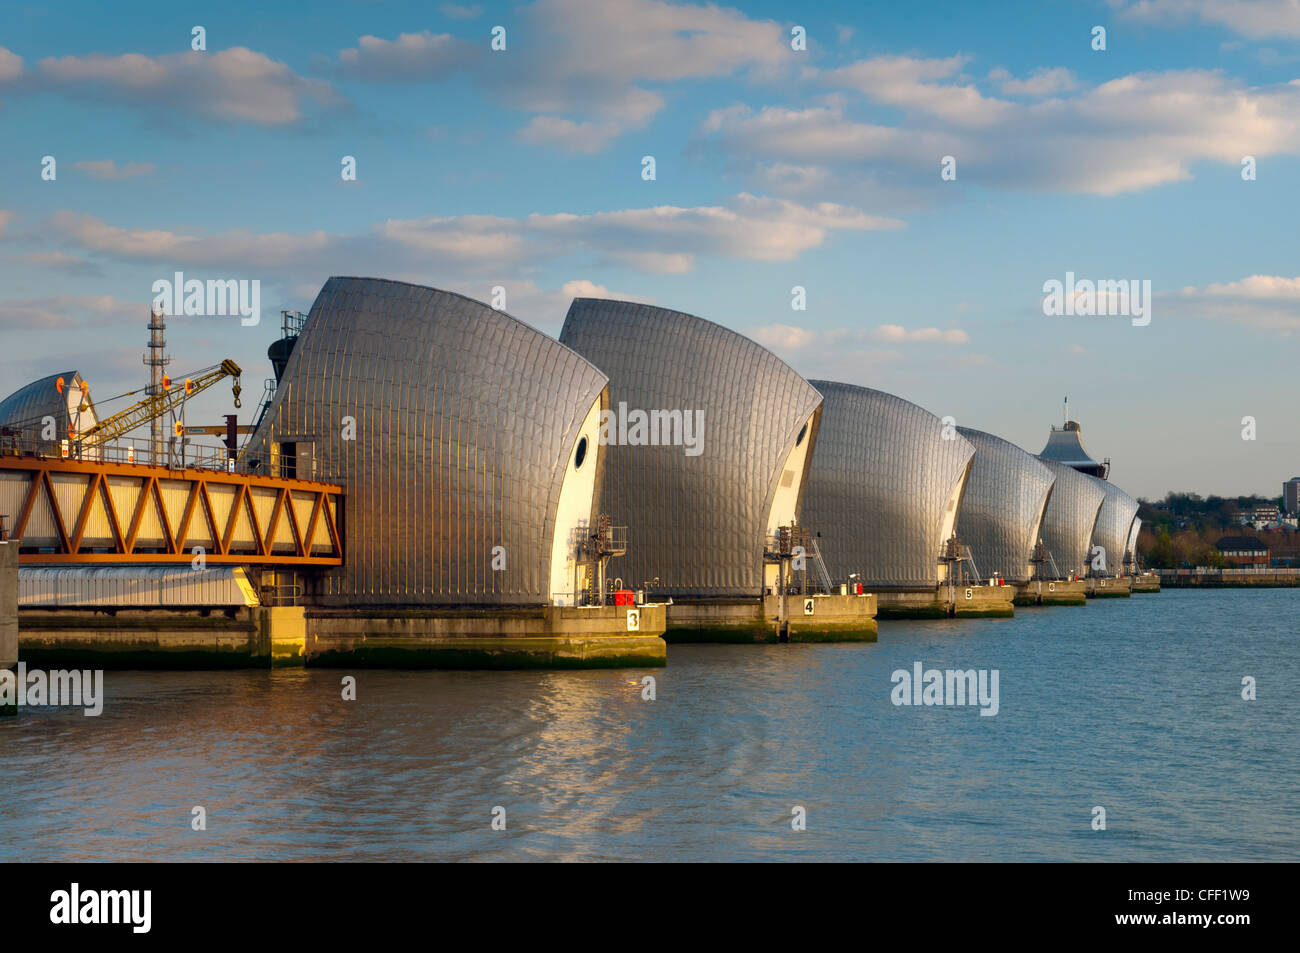 Thames Barrier, Woolwich, London, England, United Kingdom, Europe - Stock Image